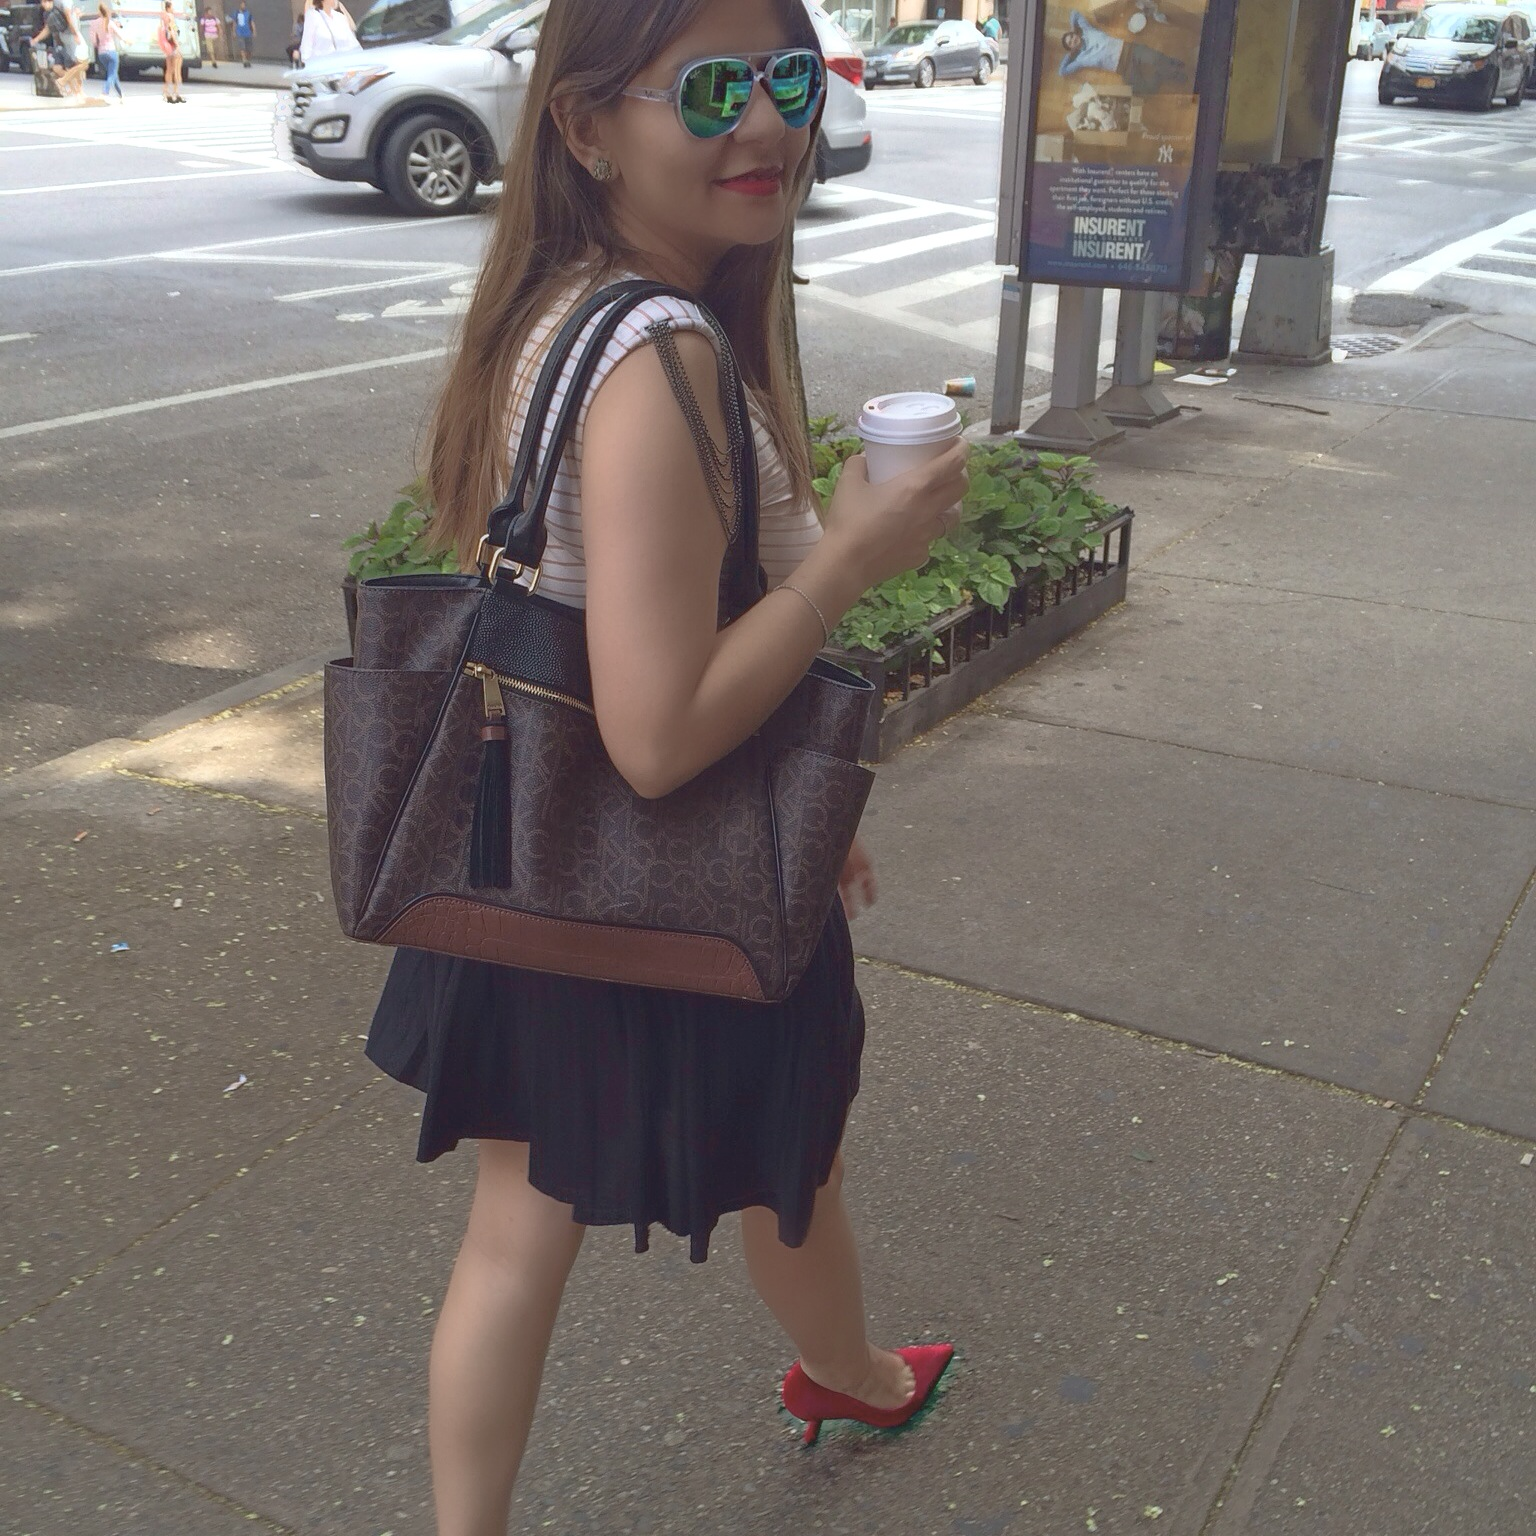 red_shoes_alleygirl_street_style3